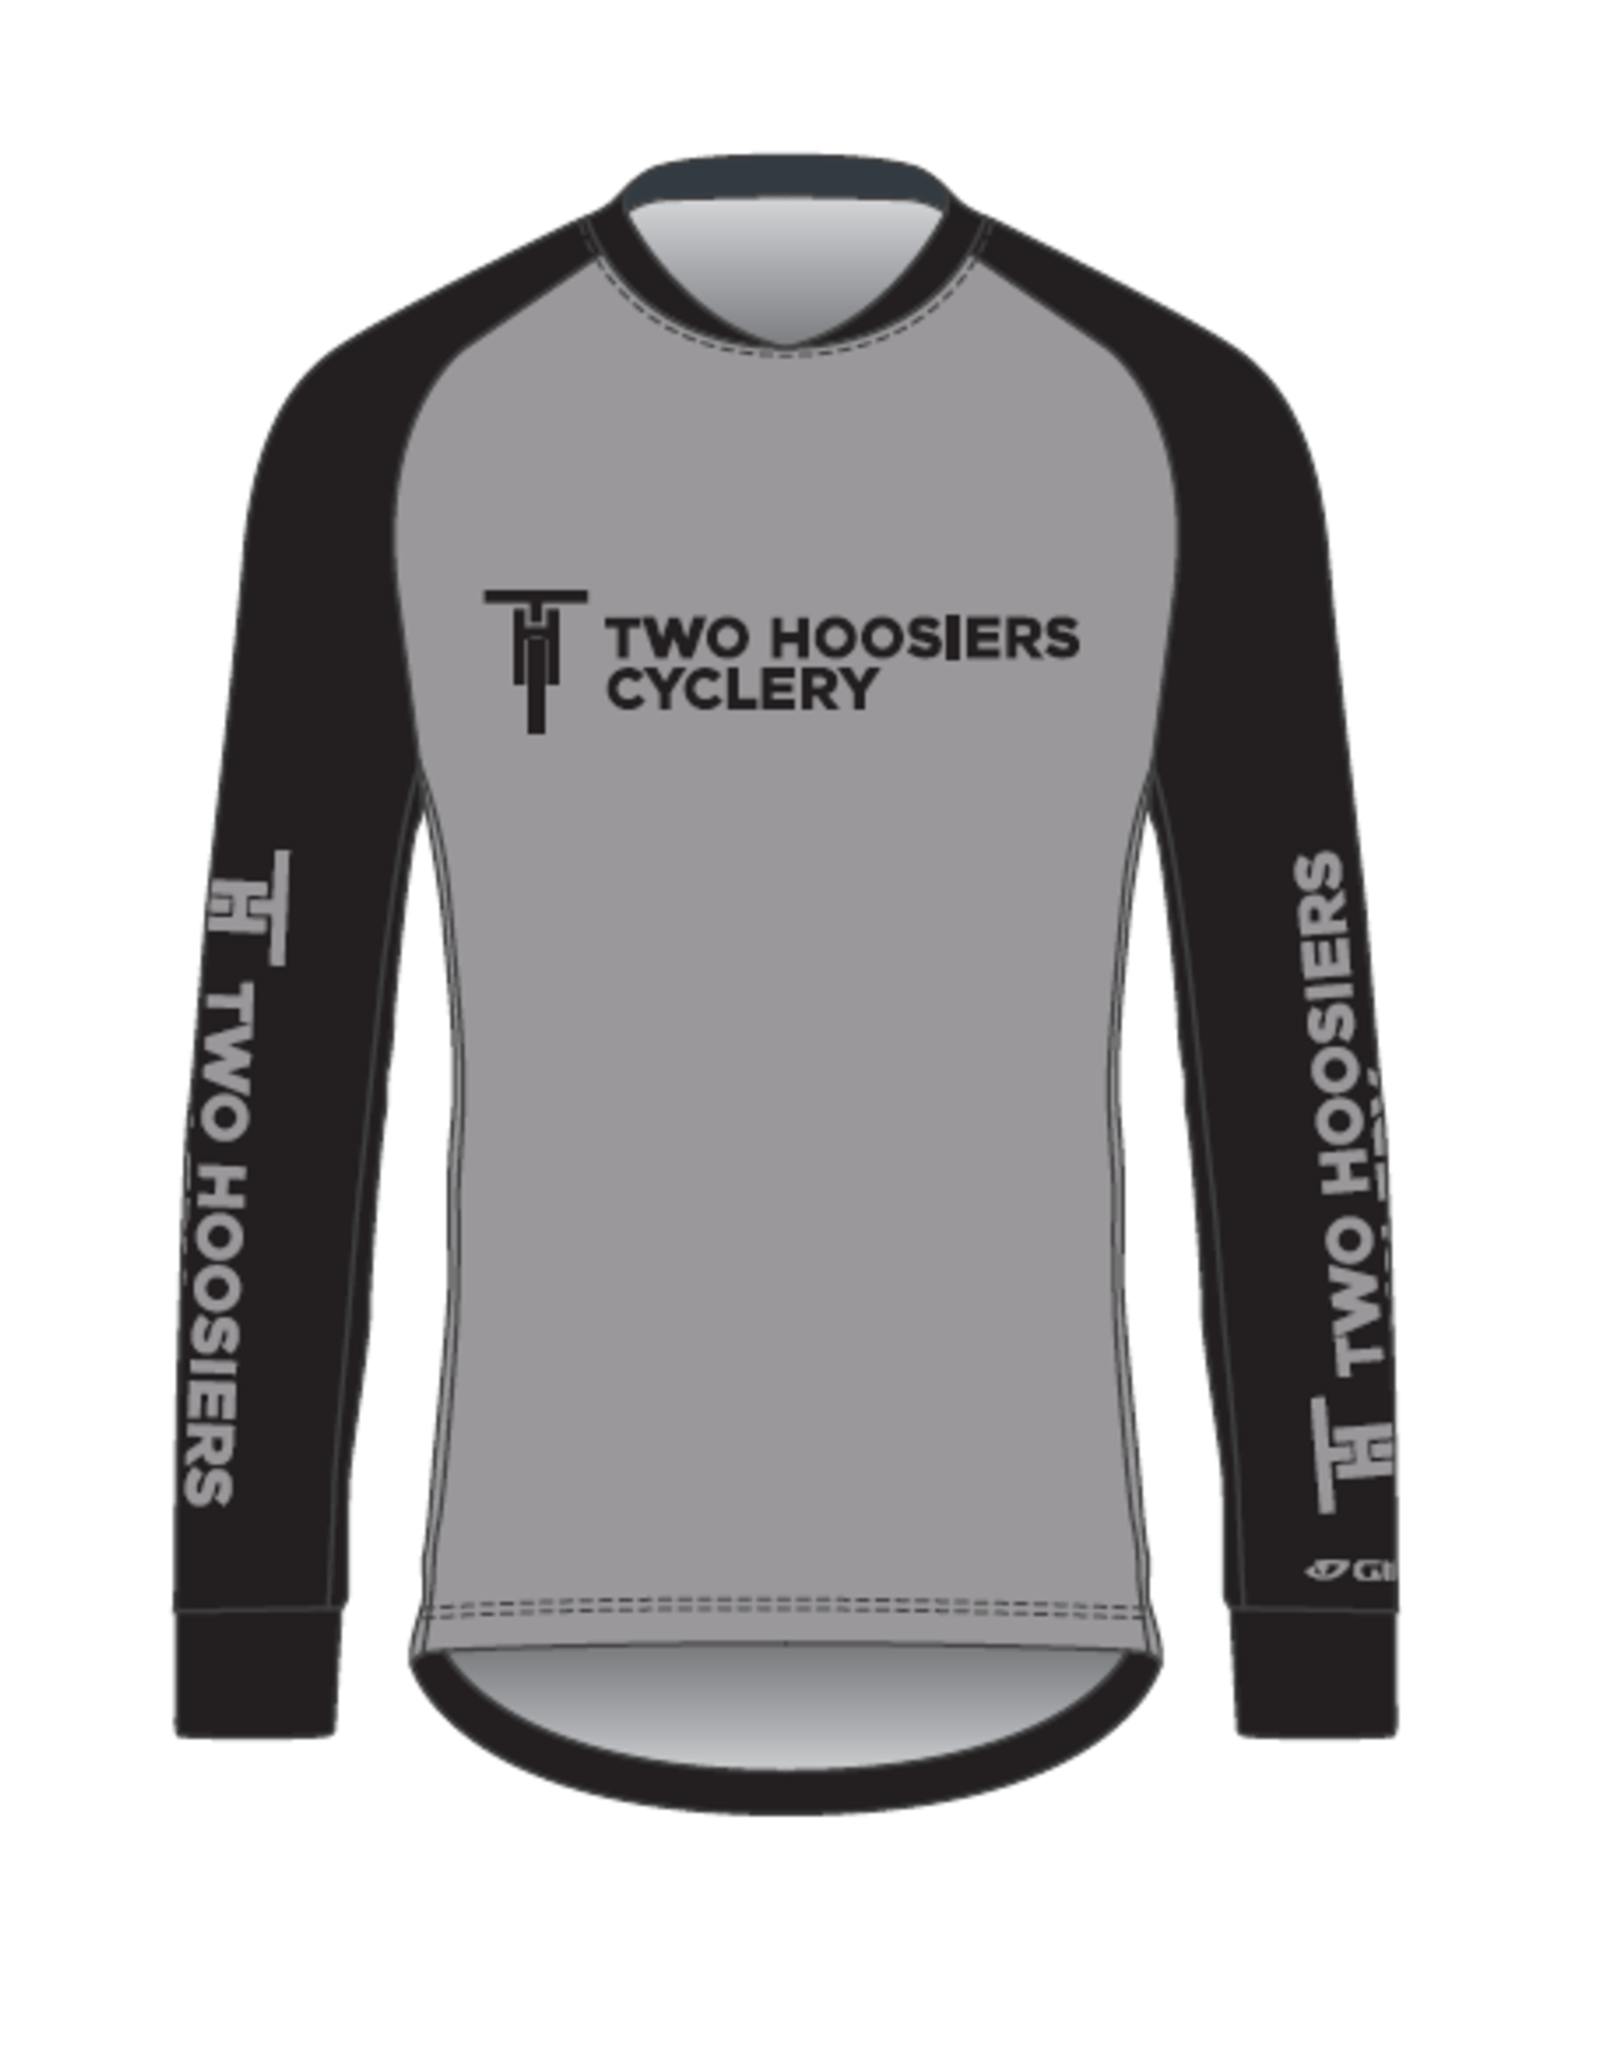 Giro 2021 Two Hoosiers Cyclery Giro Roust Long Sleeve Jersey